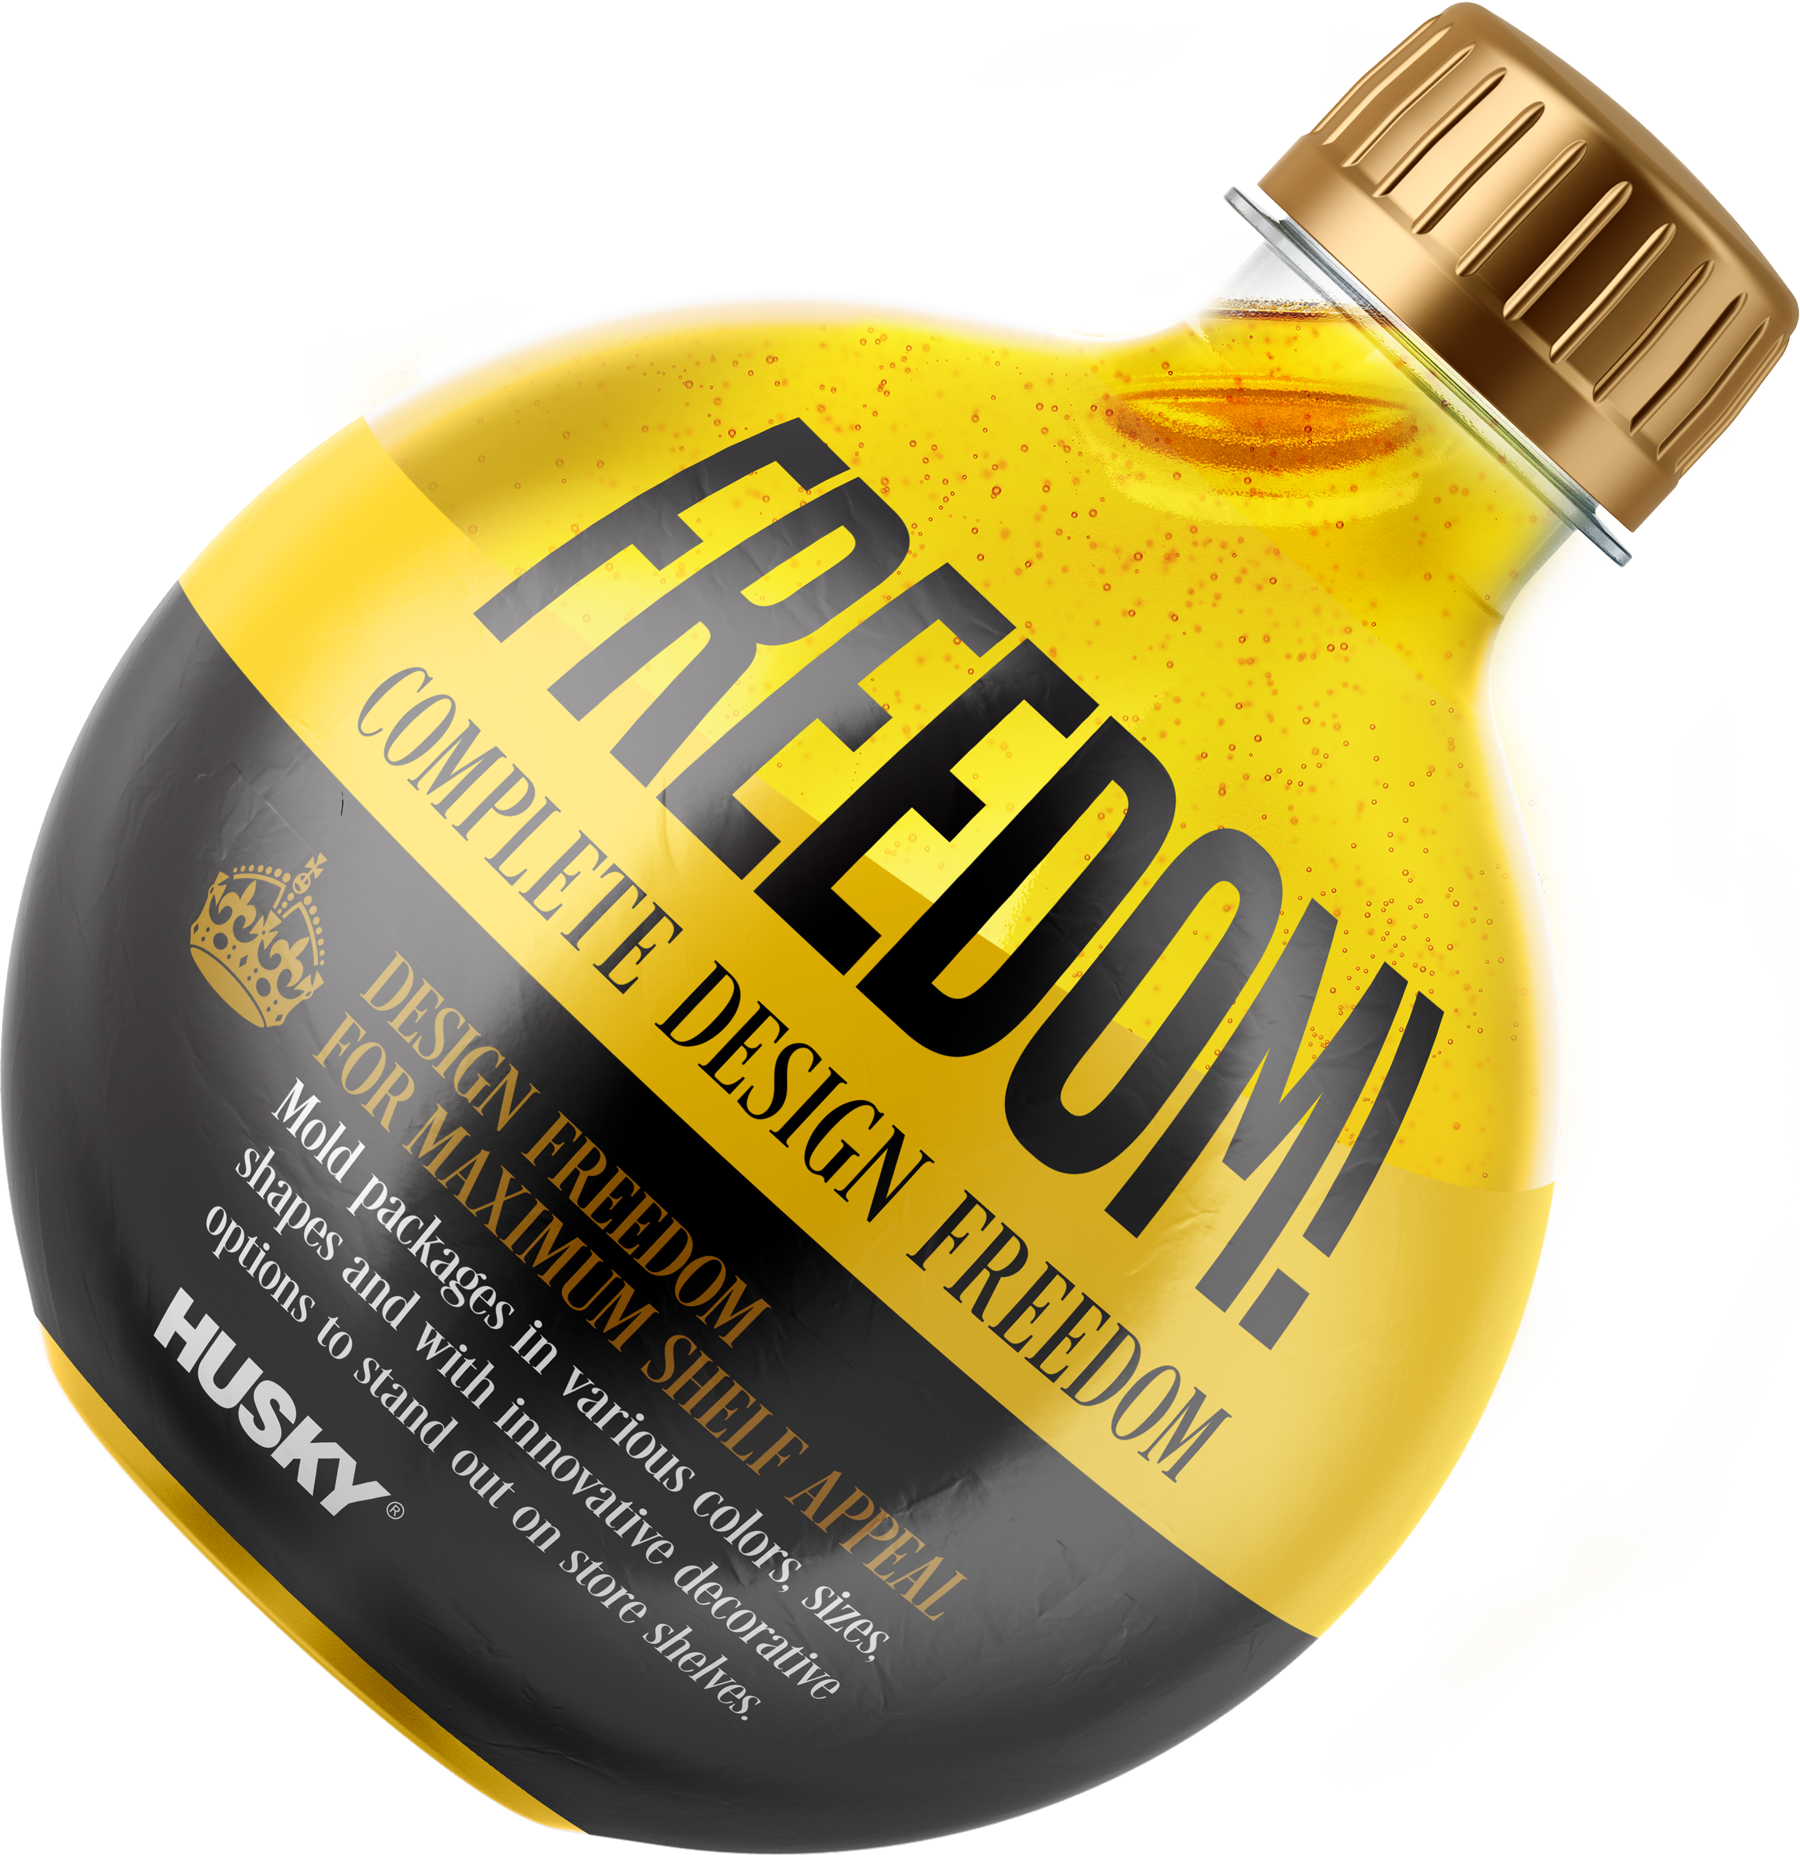 PET freedom bottle